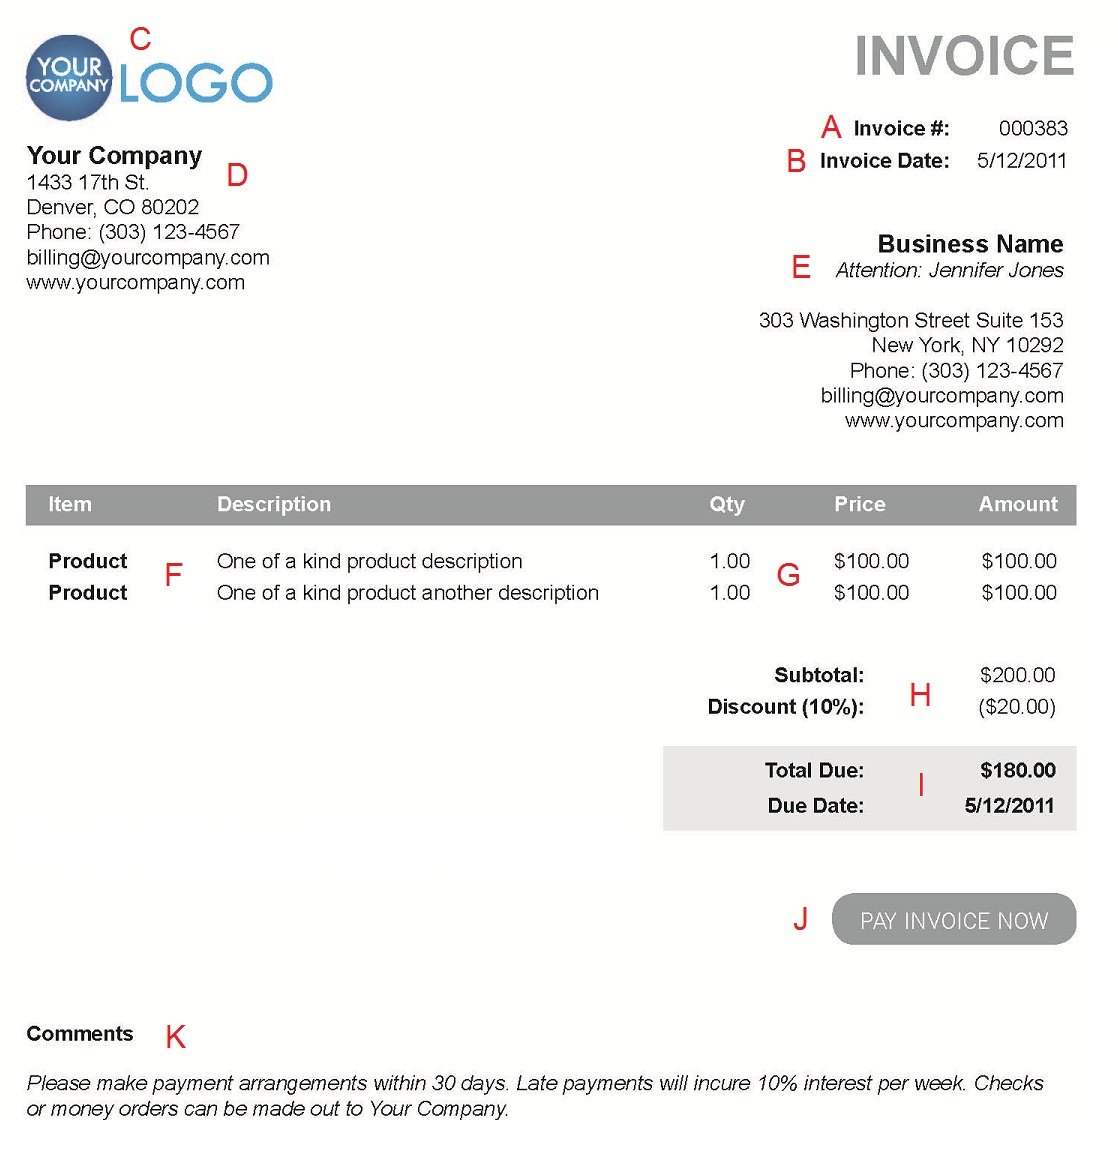 Coachoutletonlineplusus  Pretty The  Different Sections Of An Electronic Payment Invoice With Inspiring A  With Cute Consulting Invoice Example Also Daycare Invoice Template In Addition Commercial Invoice For International Shipping And Invoice Outline As Well As Creat Invoice Additionally Contractor Invoice Example From Paysimplecom With Coachoutletonlineplusus  Inspiring The  Different Sections Of An Electronic Payment Invoice With Cute A  And Pretty Consulting Invoice Example Also Daycare Invoice Template In Addition Commercial Invoice For International Shipping From Paysimplecom